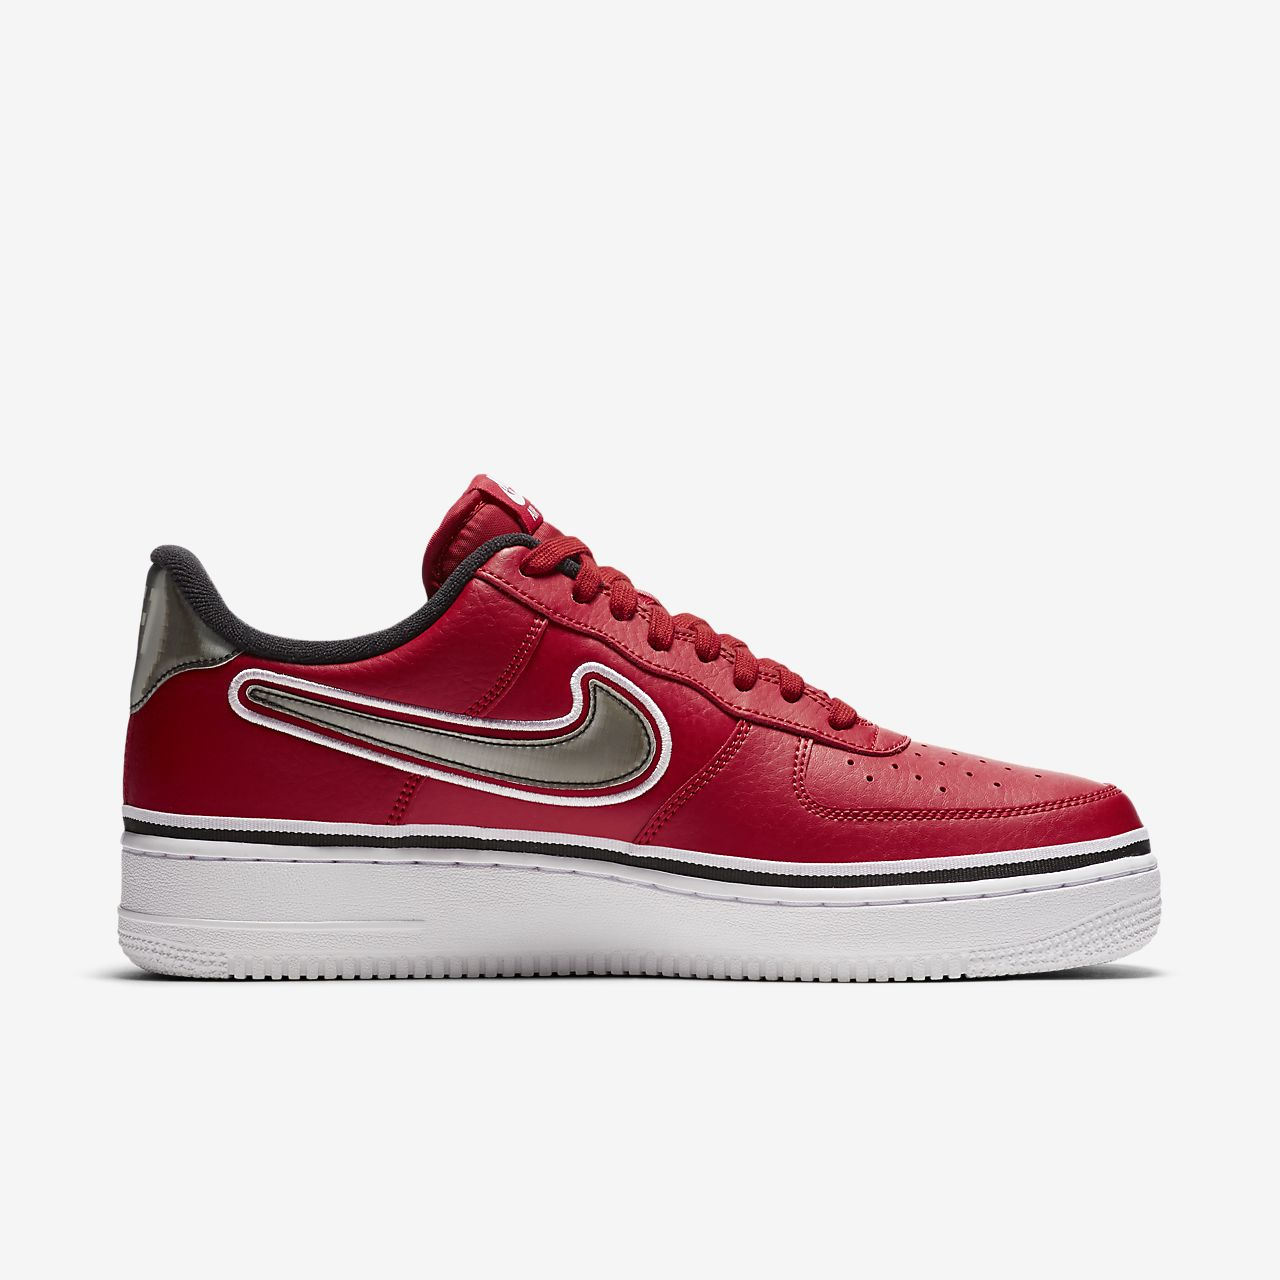 8c435bc34a8 Nike Air Force 1 NBA Low (Chicago Bulls) Men s Shoe. Nike.com GB